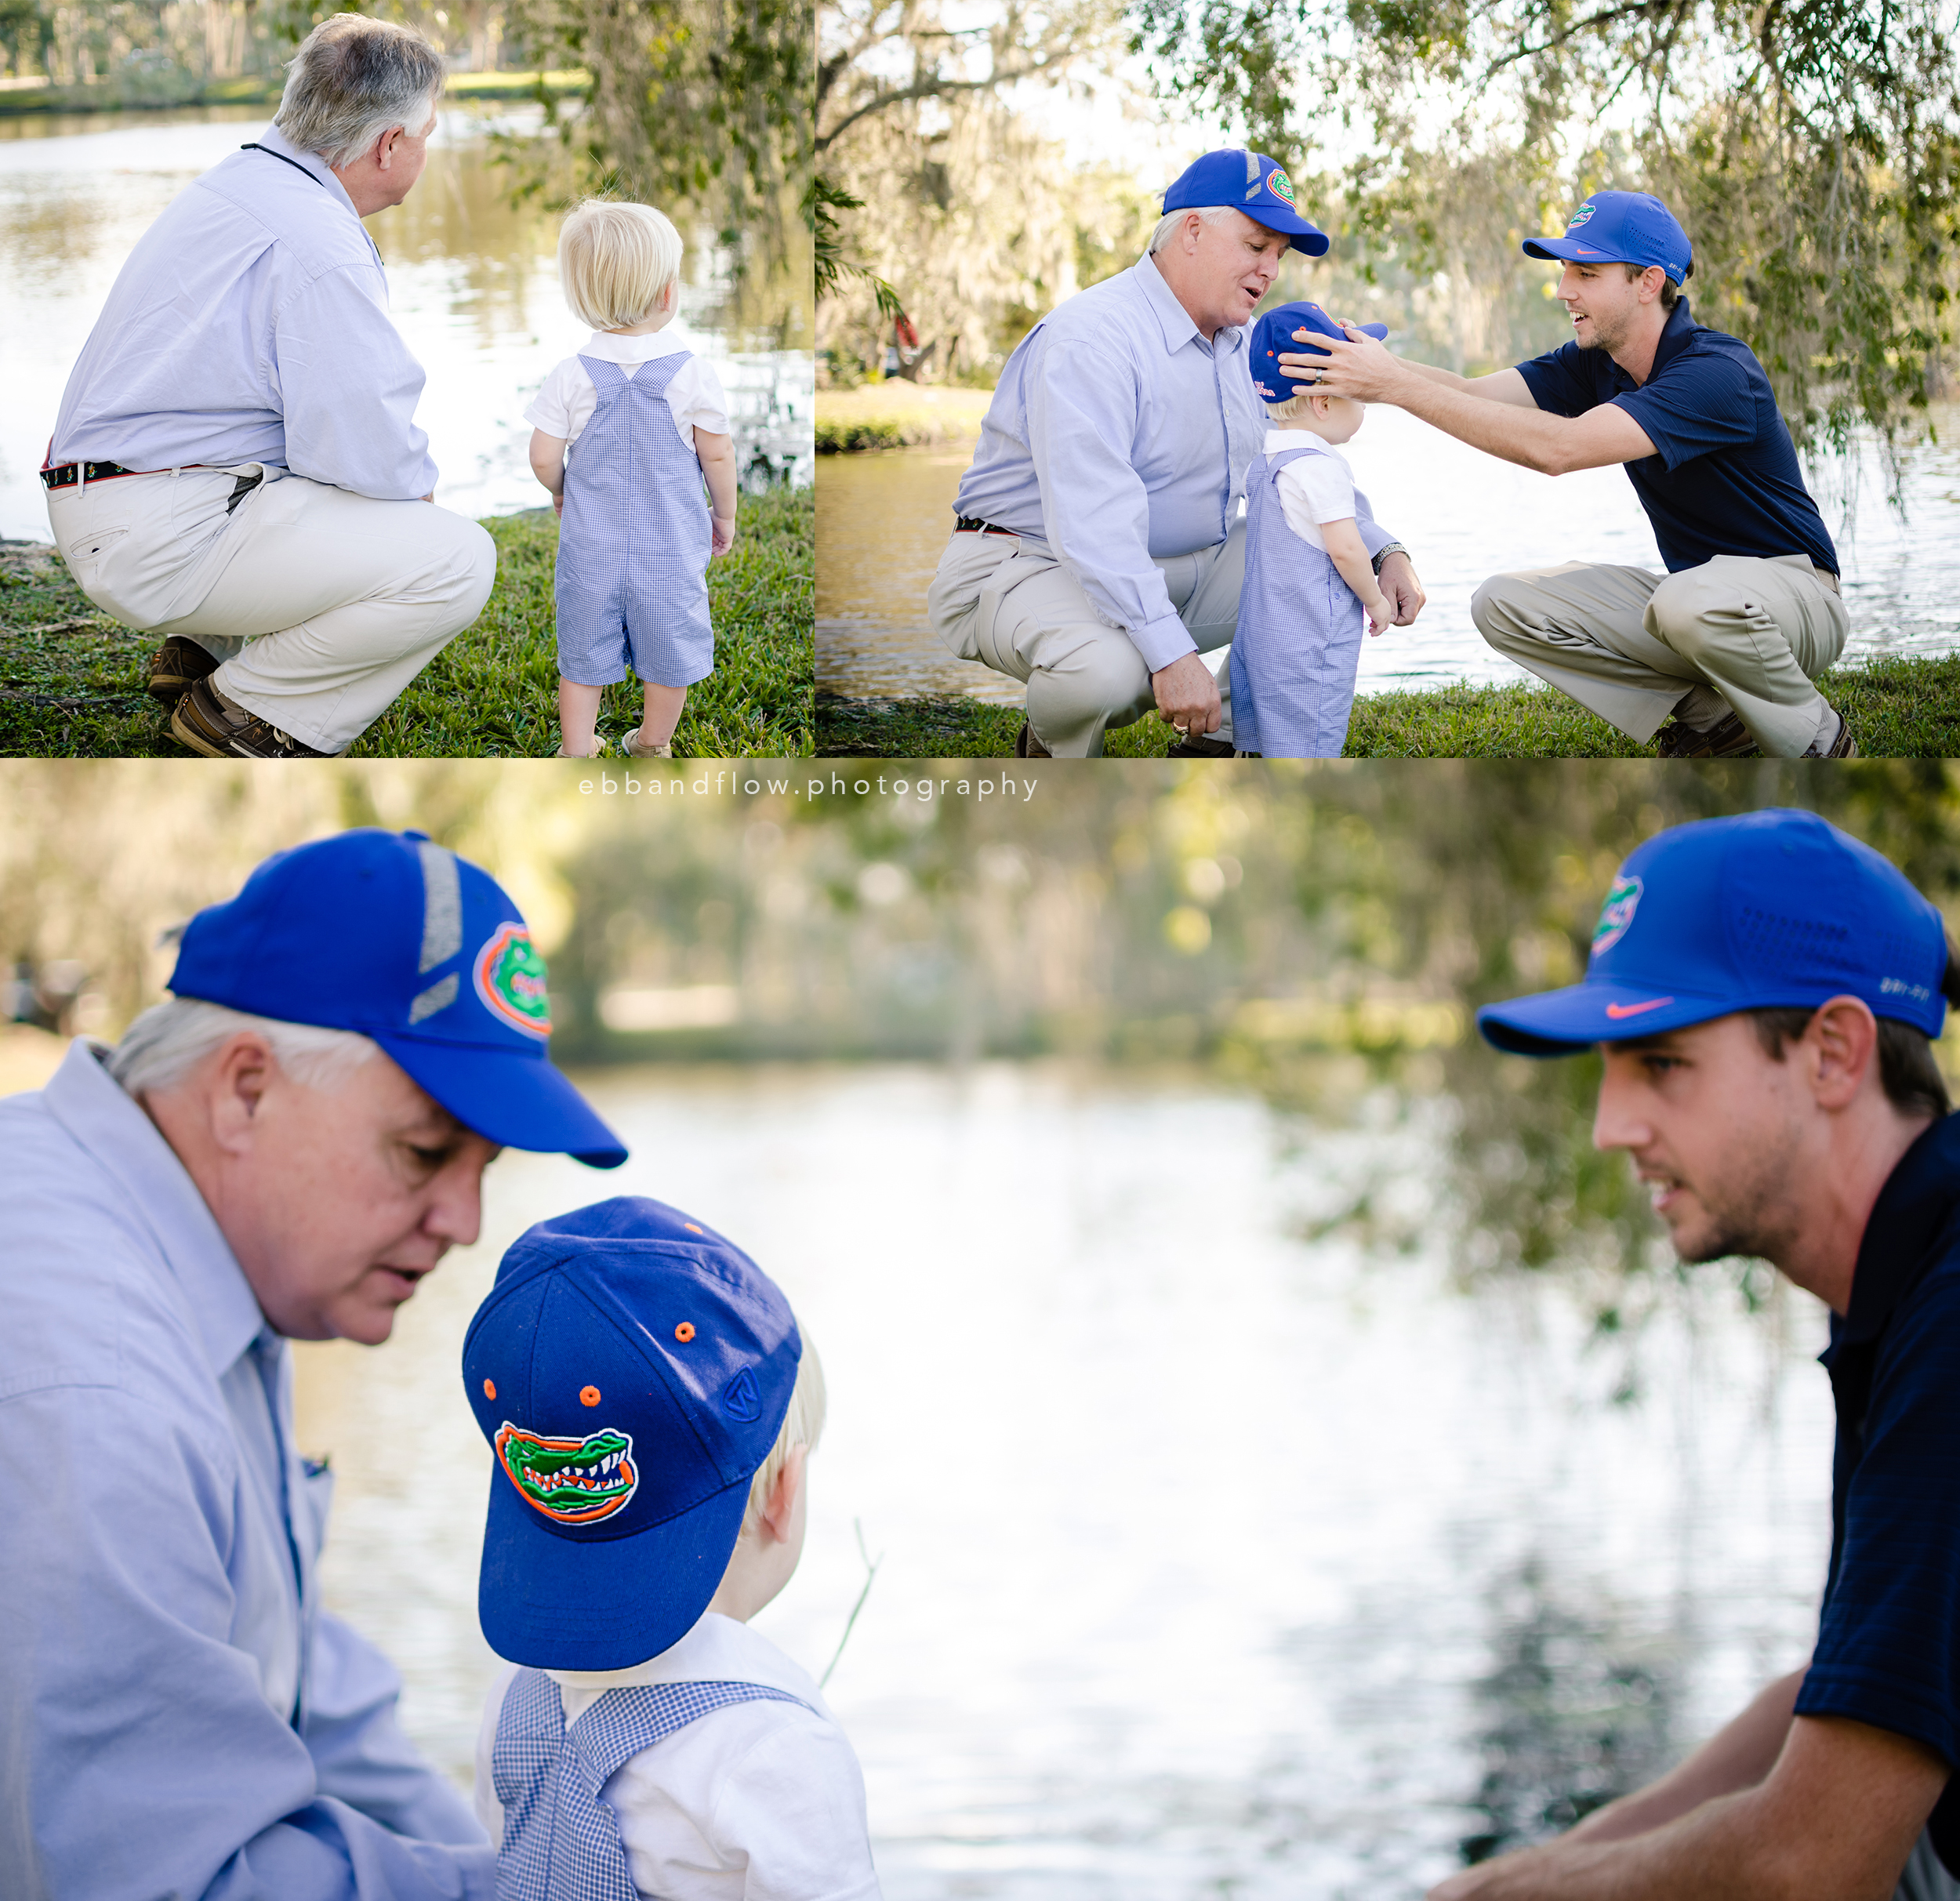 Gator Fans - Fort Pierce - Treasure Coast Family Photographer - Ebb and Flow Photography